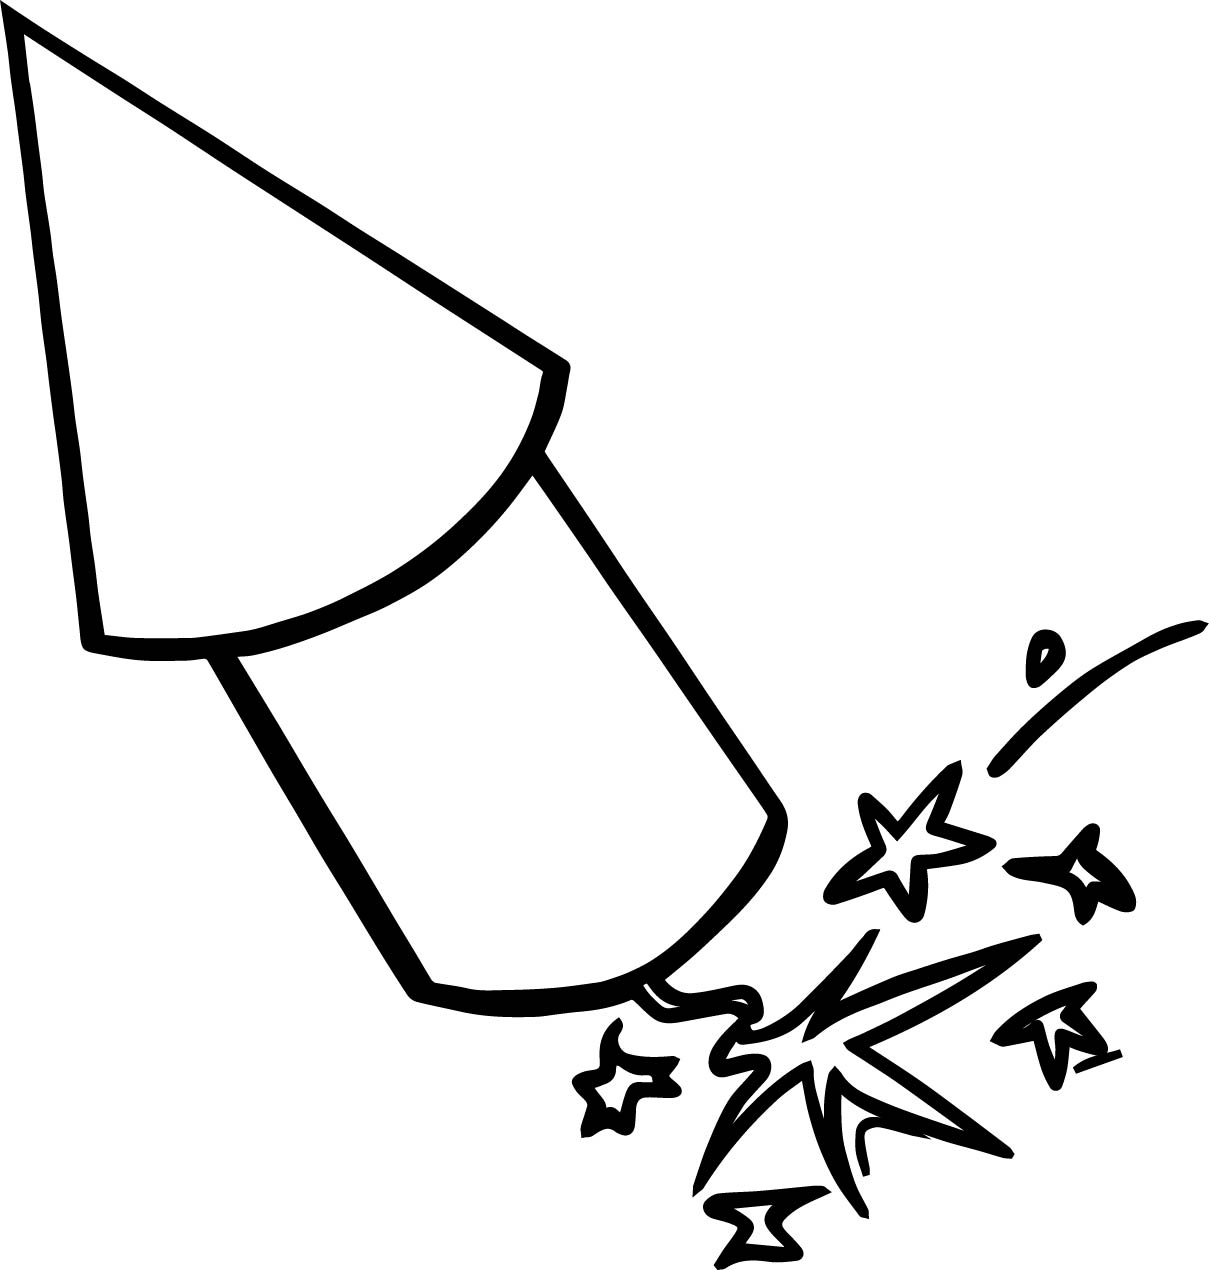 4th Of July Rocket Coloring Page | Wecoloringpage.com